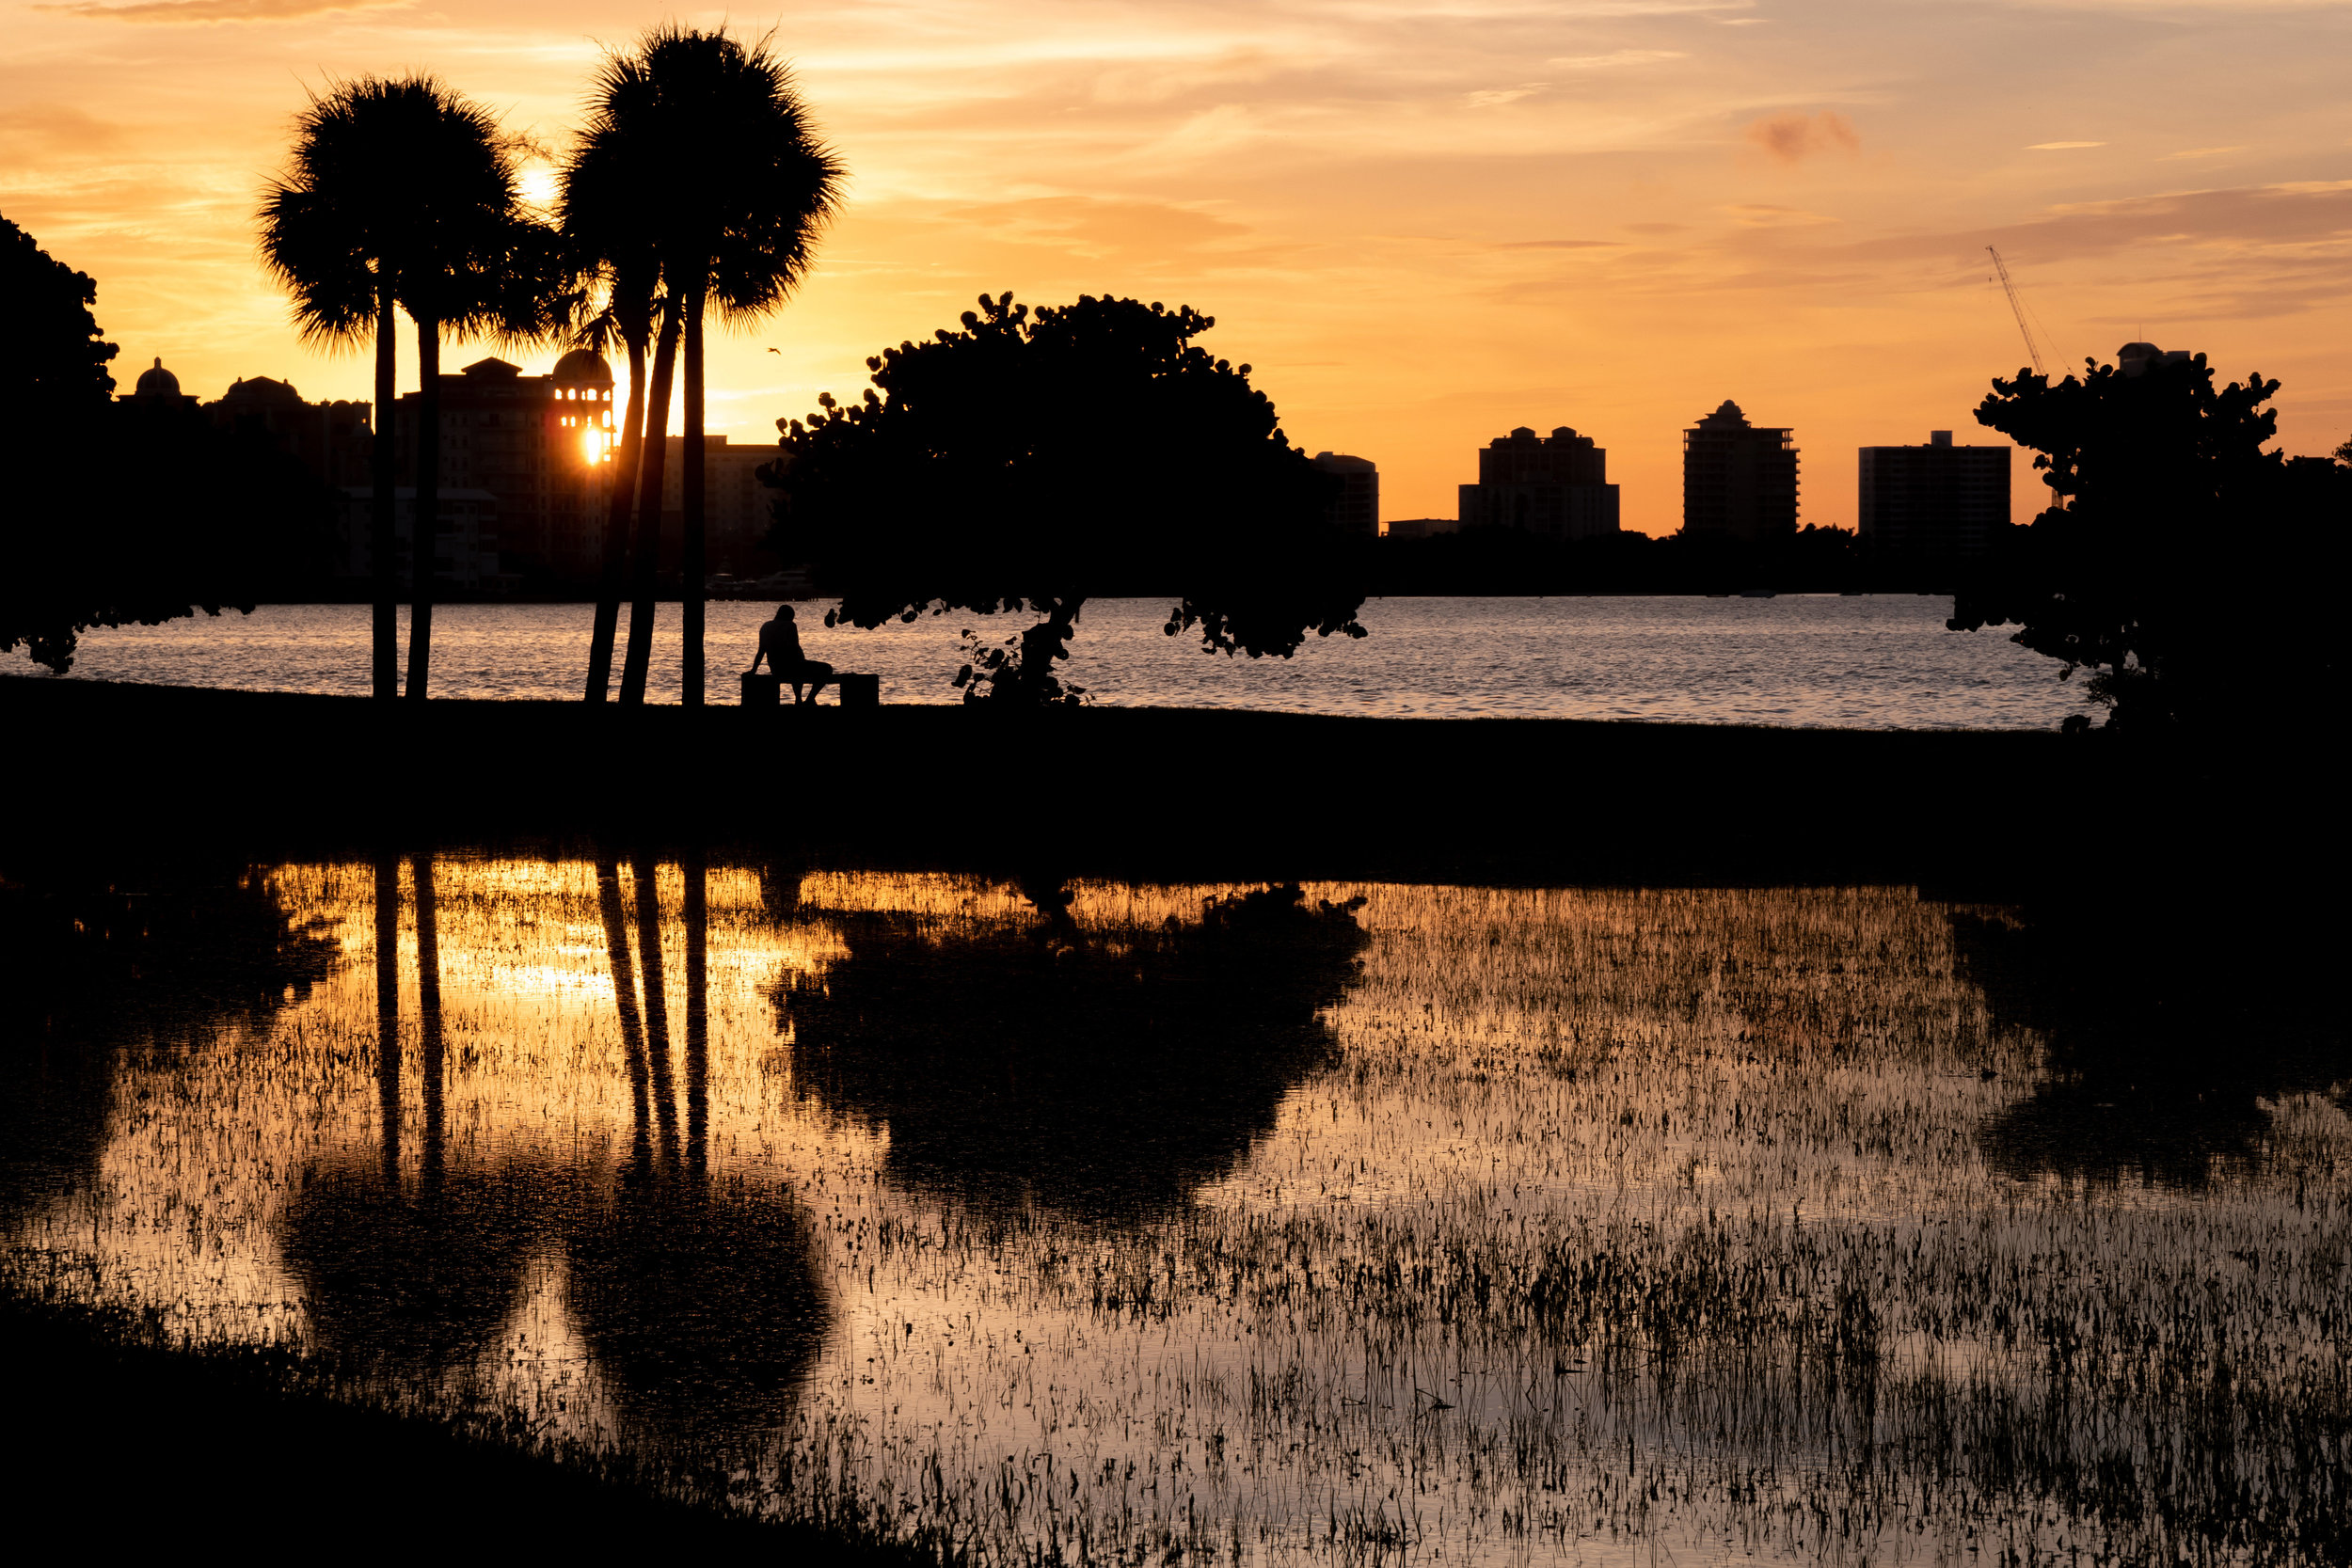 seeing Sarasota - How do you see a place anew, or can you, after you've laid eyes on it so many times before? Explore our strategies for playing tourist in a beloved destination you've frequented time and again.